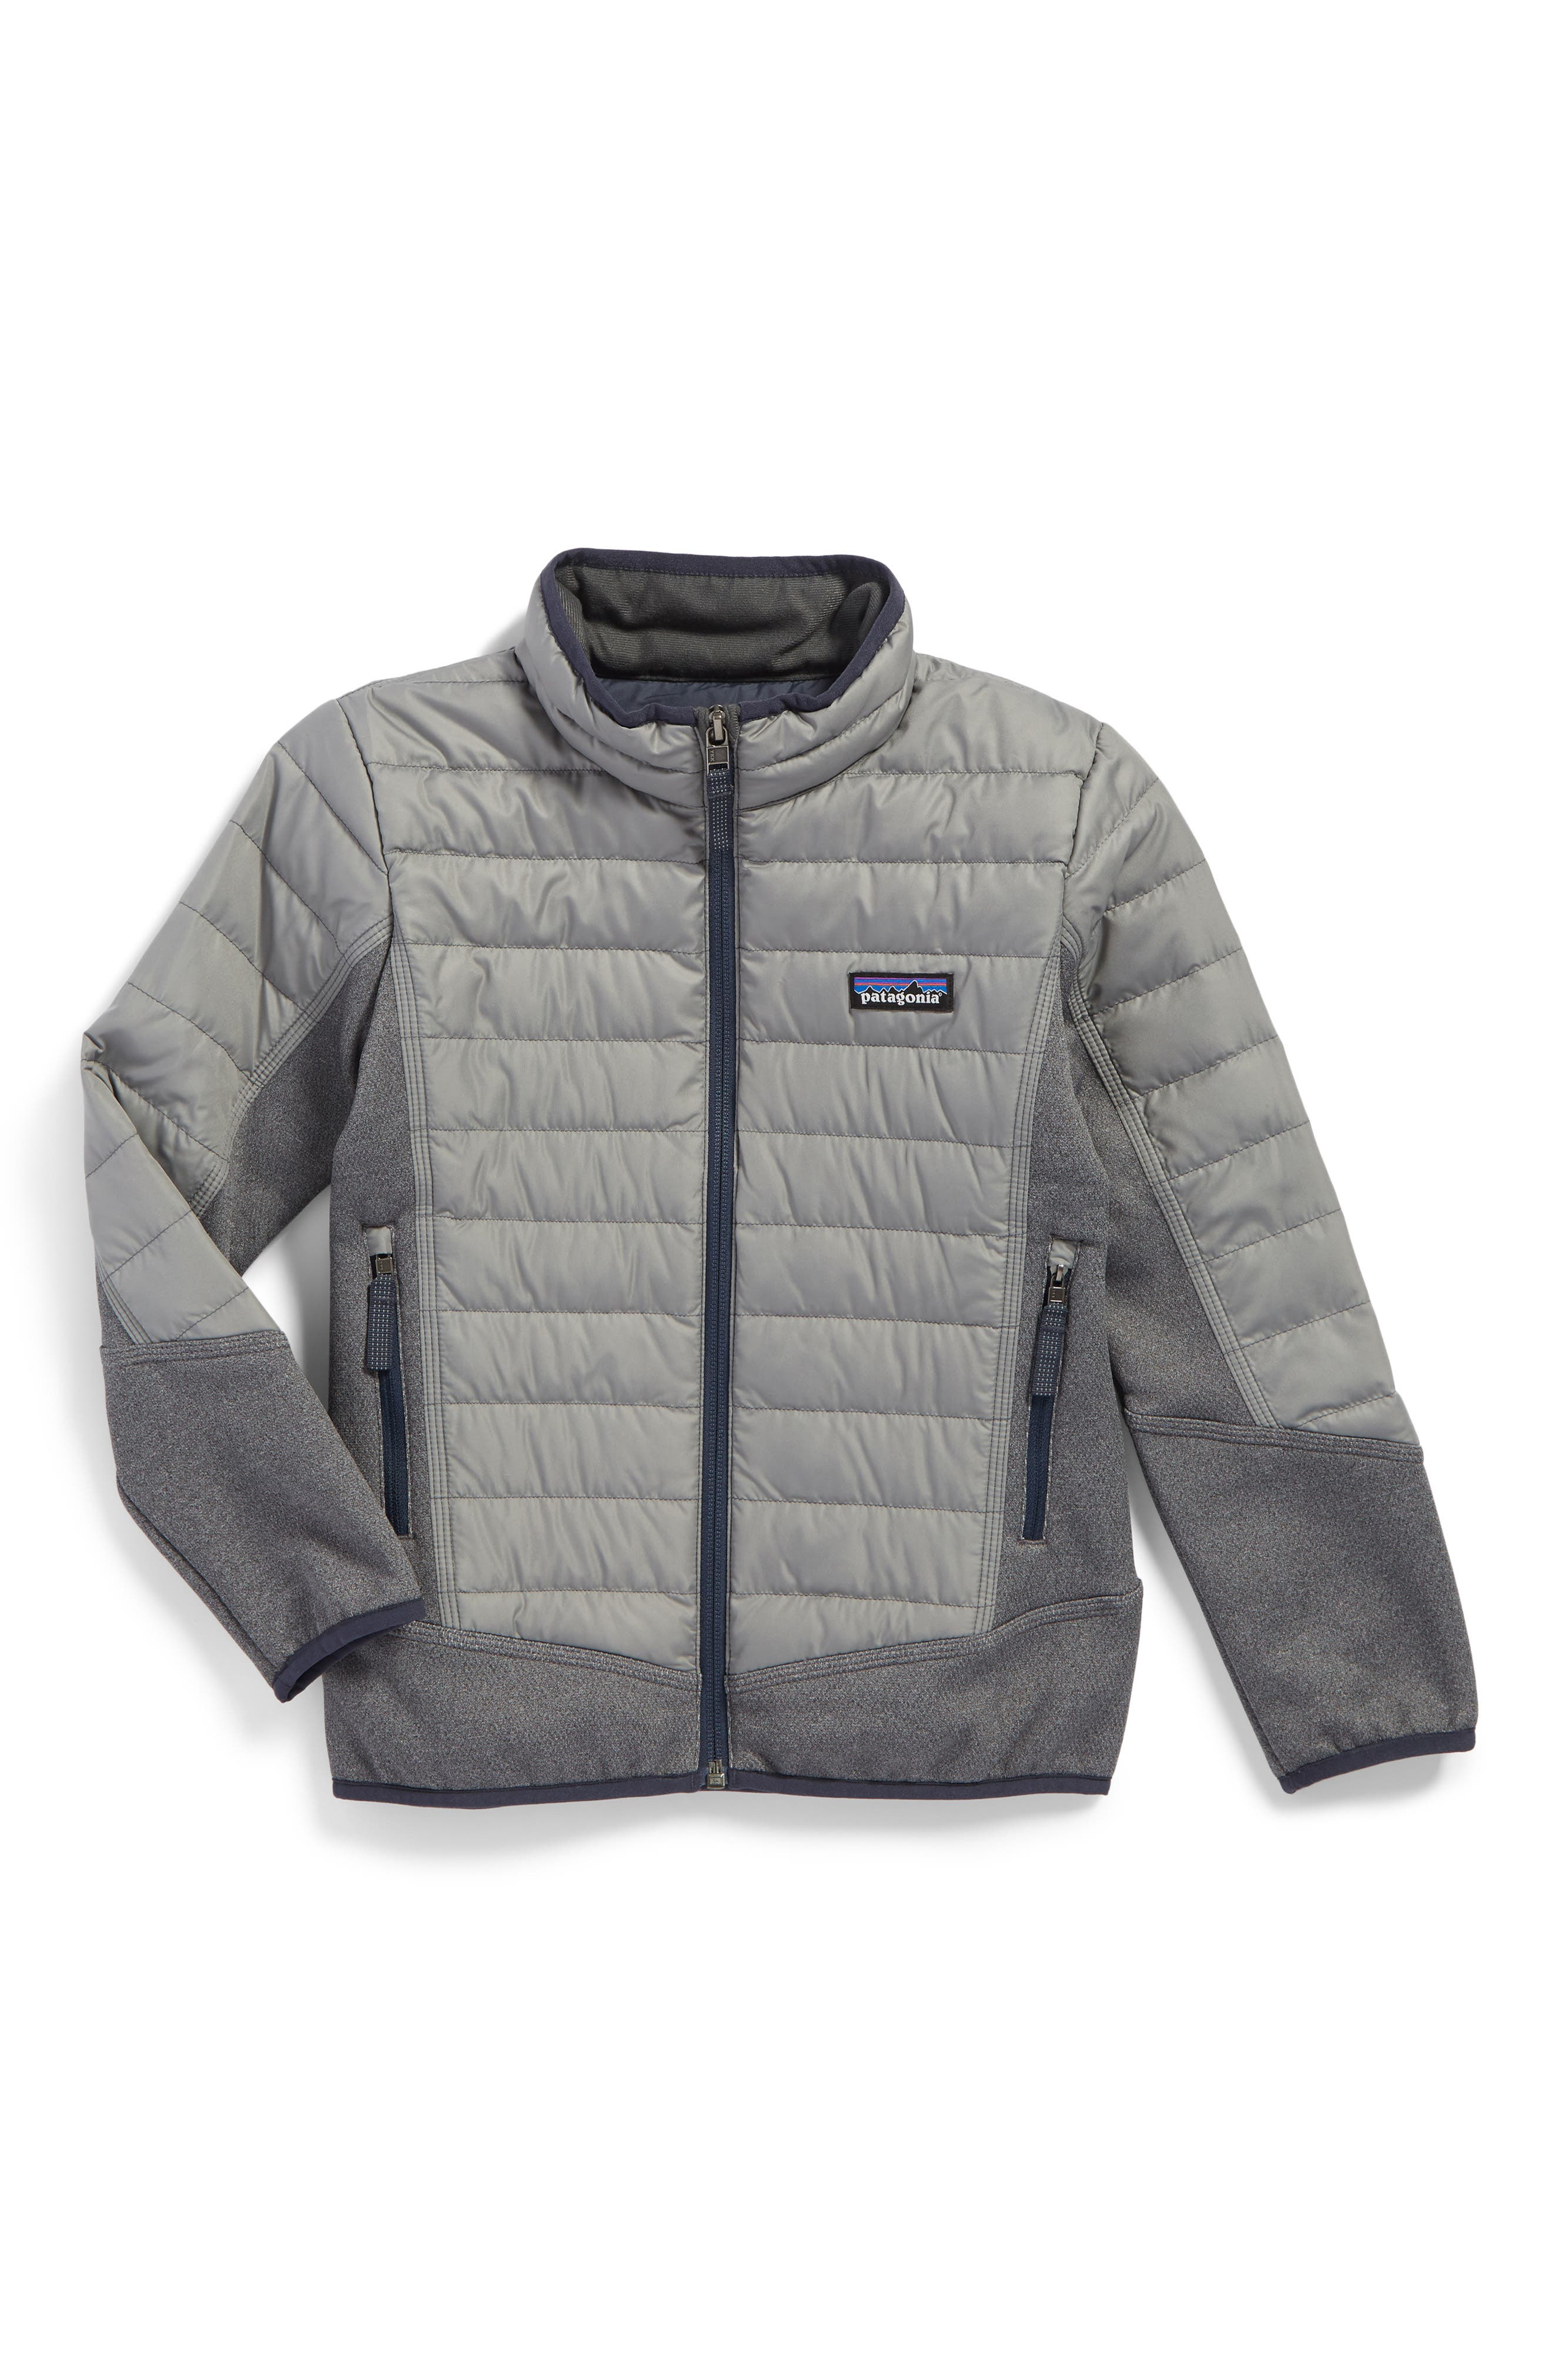 600-Fill Power Down Water-Repellent Hybrid Jacket,                         Main,                         color, Feather Grey